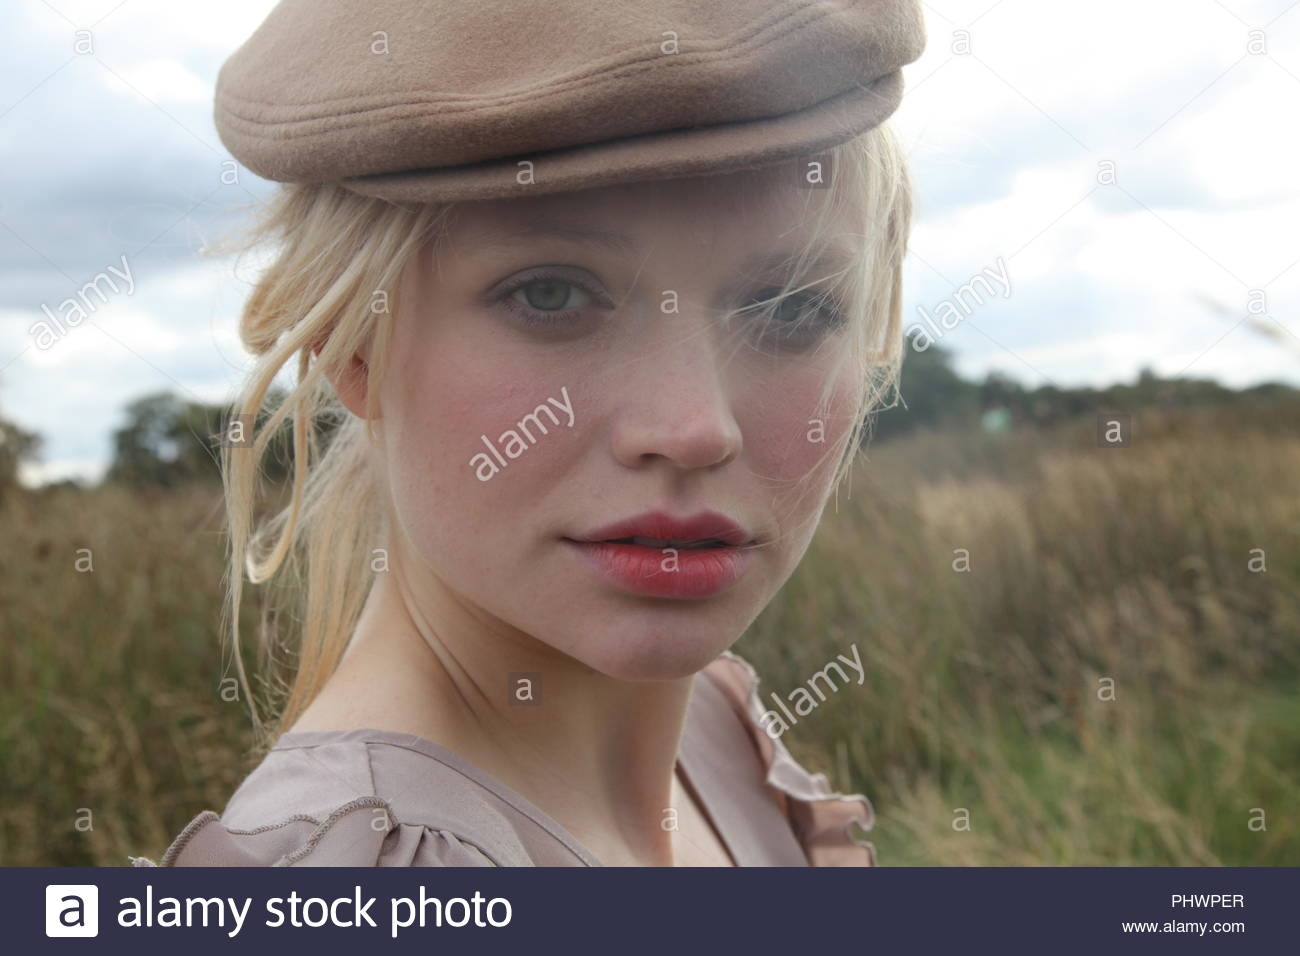 58c2ce8146f0f Young woman wearing hat Stock Photo  217540031 - Alamy